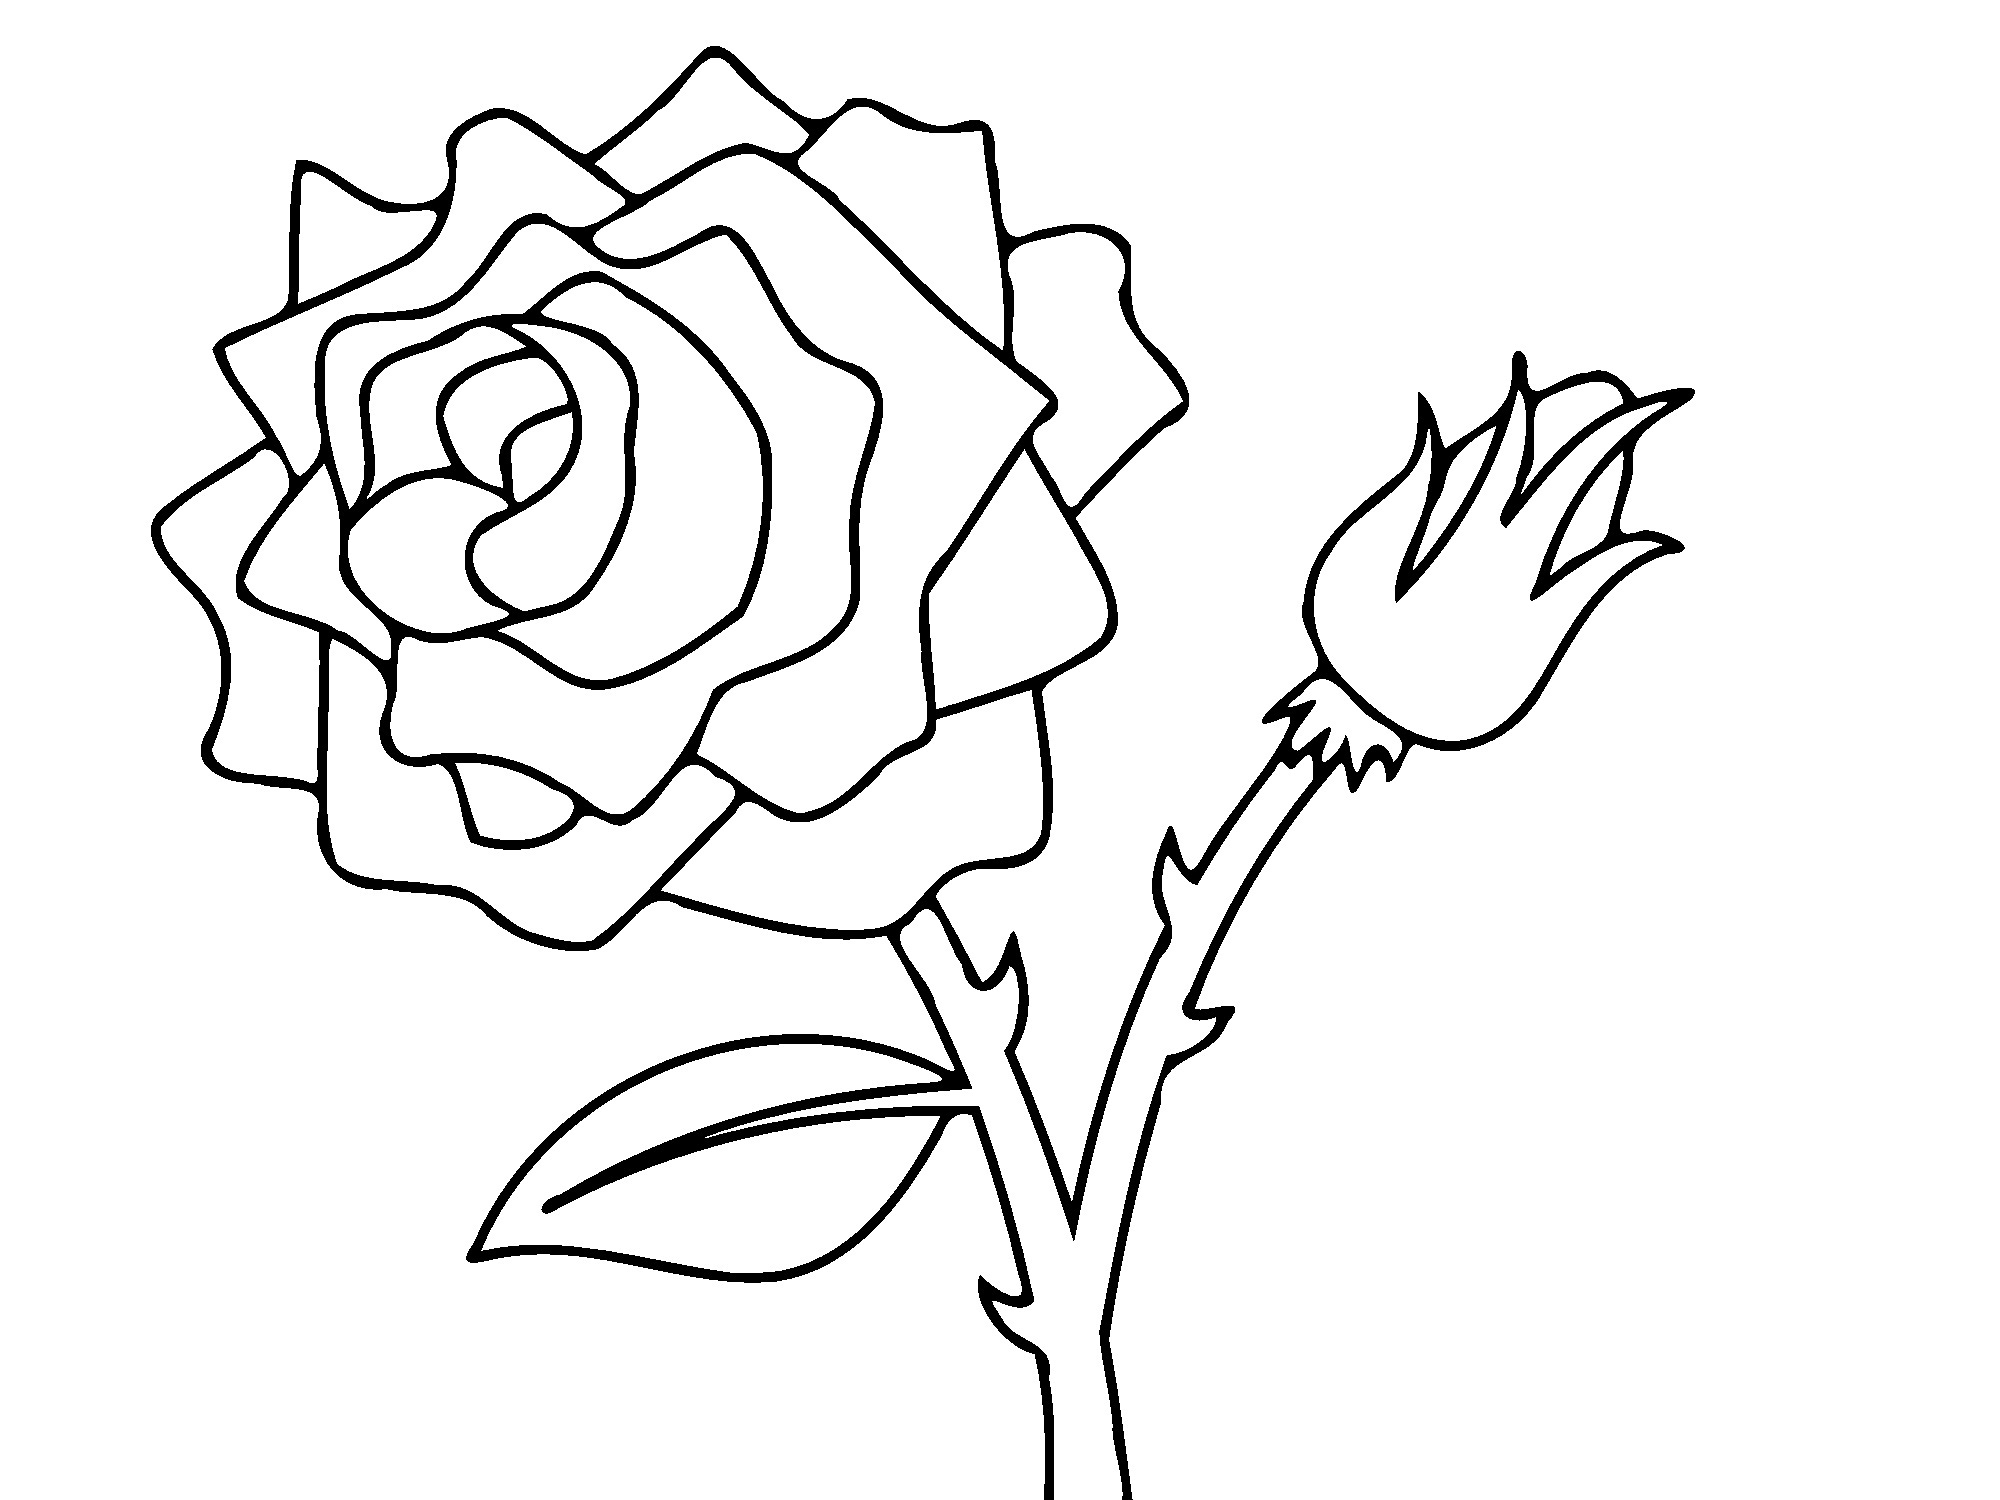 Rose Flower Drawing Images At Getdrawings Free For Personal